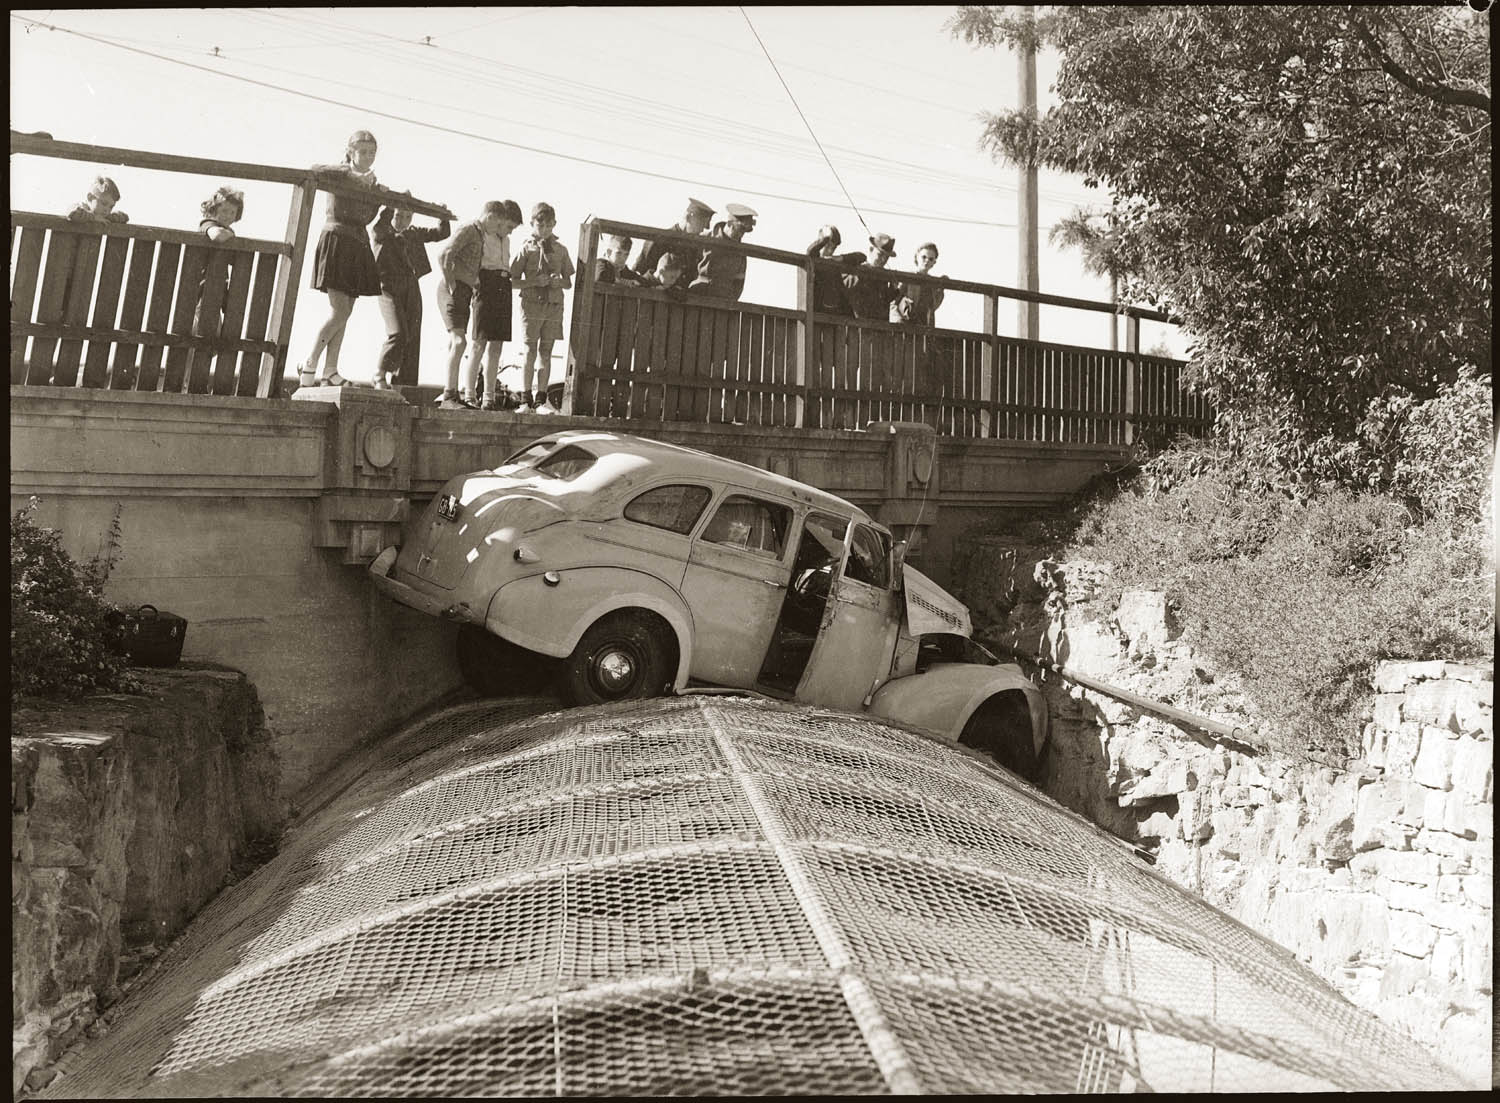 Car crash from bridge onto wire canal cover, early 1940s. details unknown.